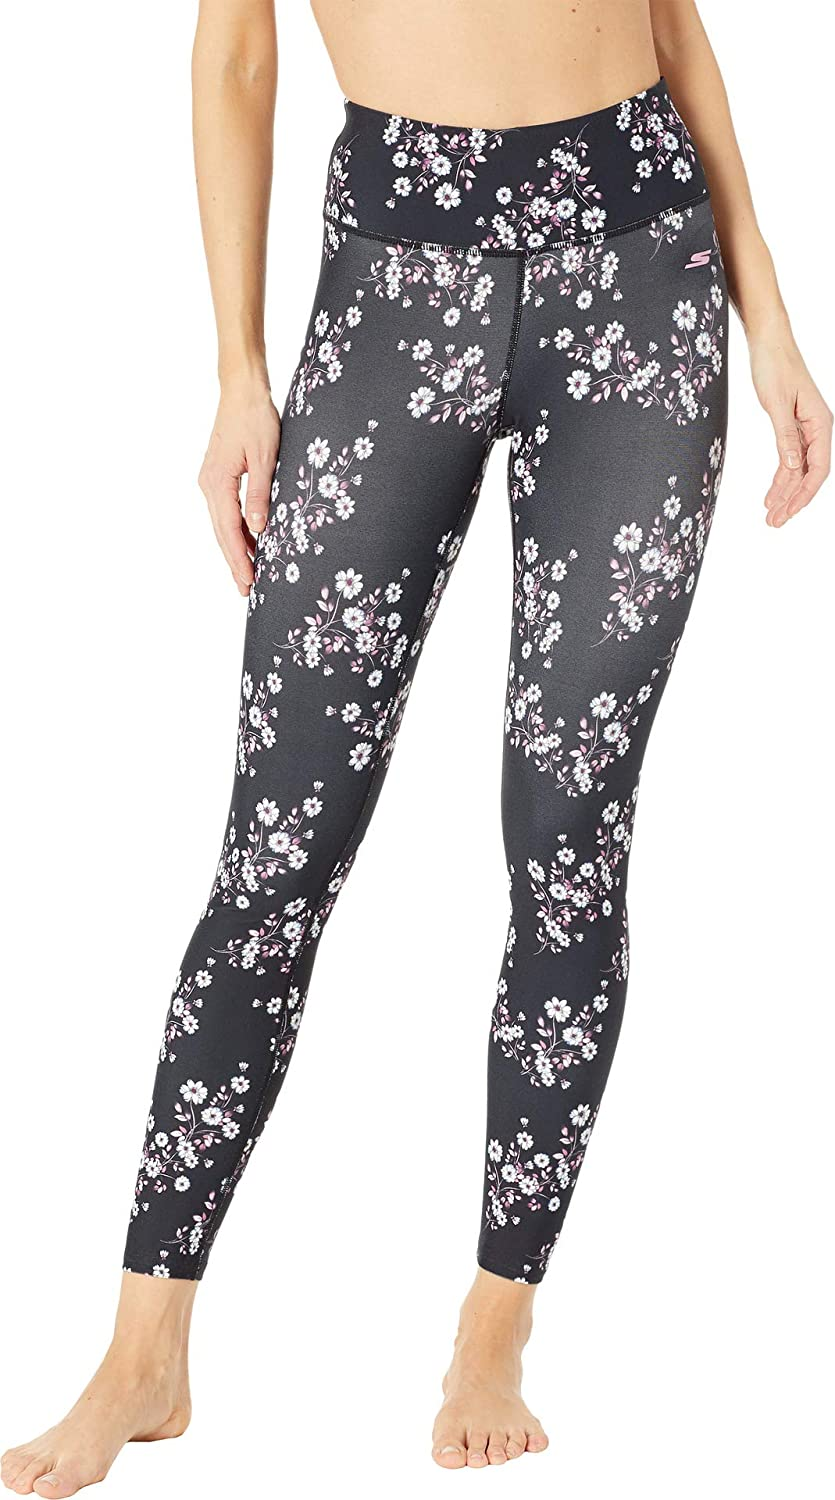 Amazon.com: Skechers Womens Cherry Blossom Leggings: Clothing